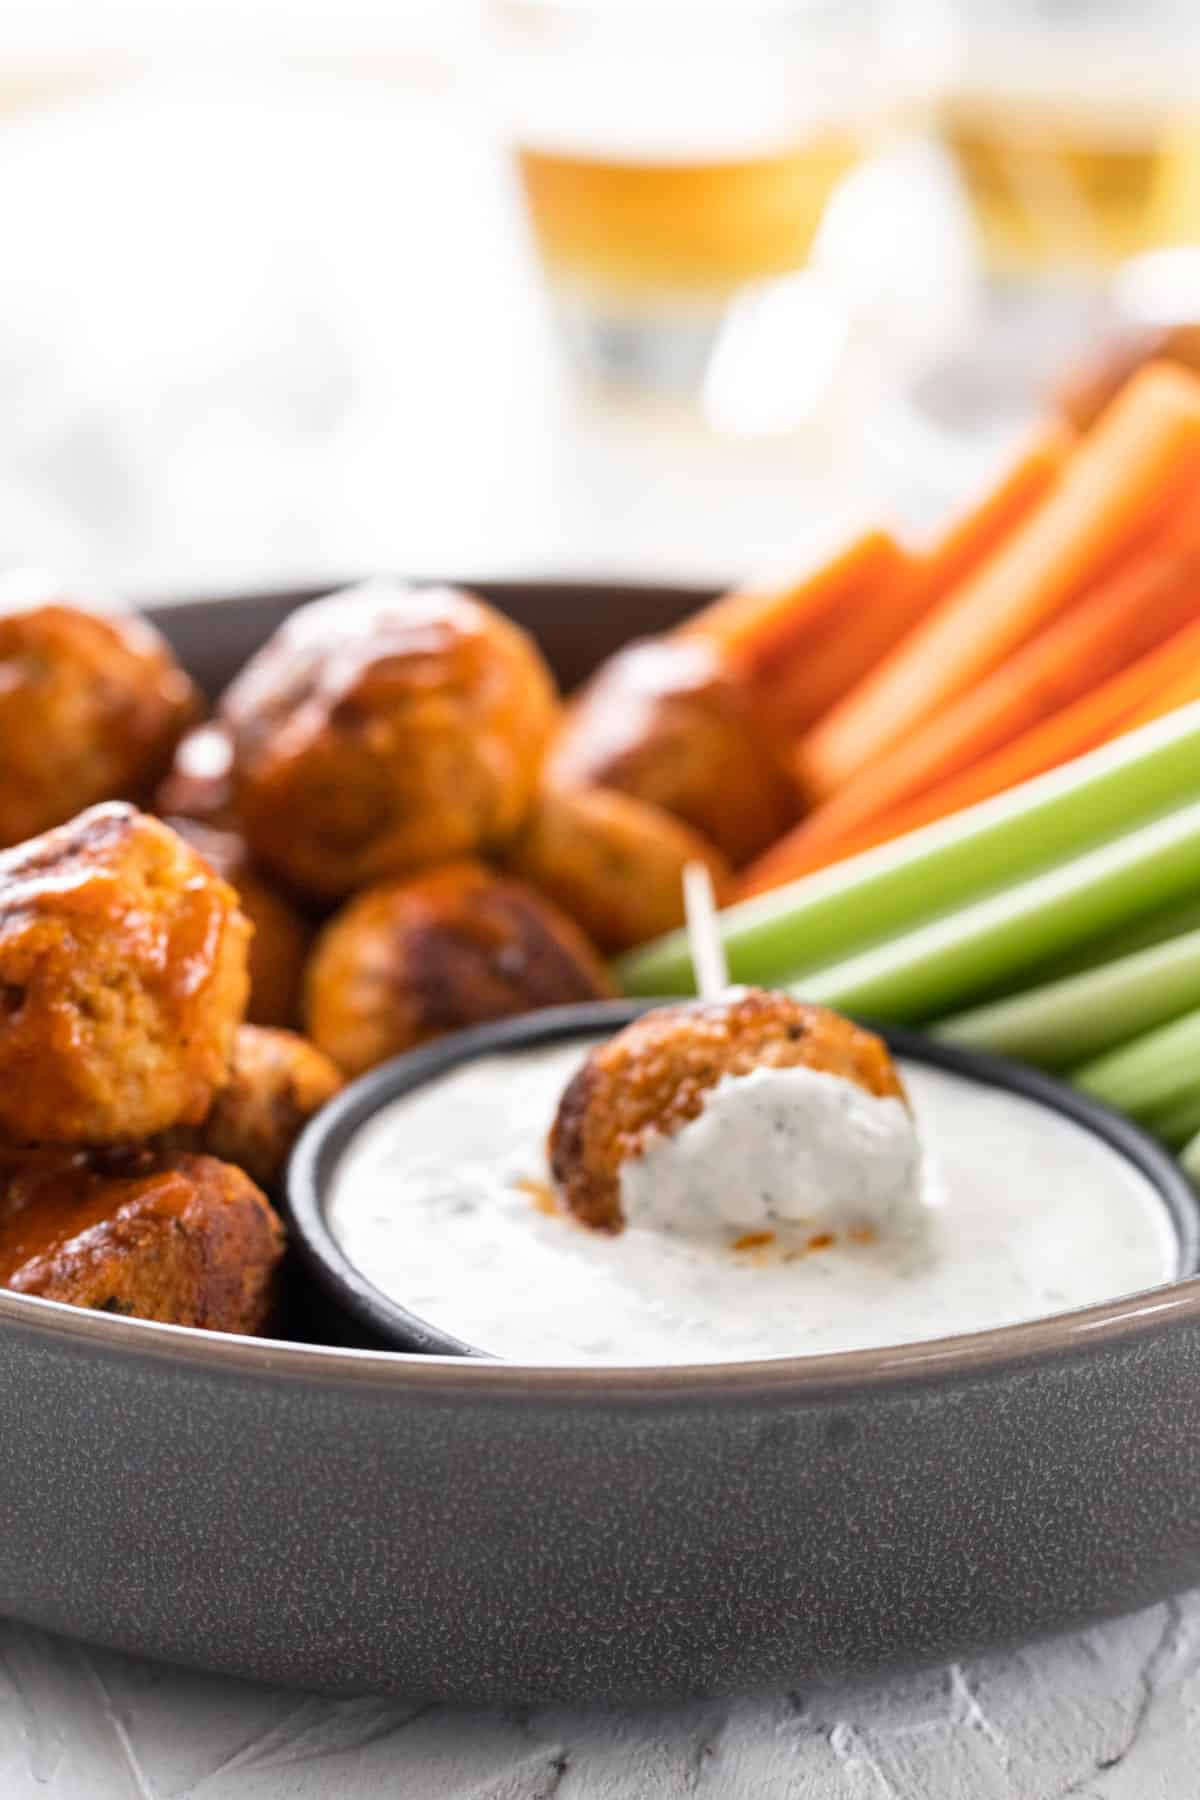 A buffalo turkey meatball on a toothpick dipped in feta ranch.